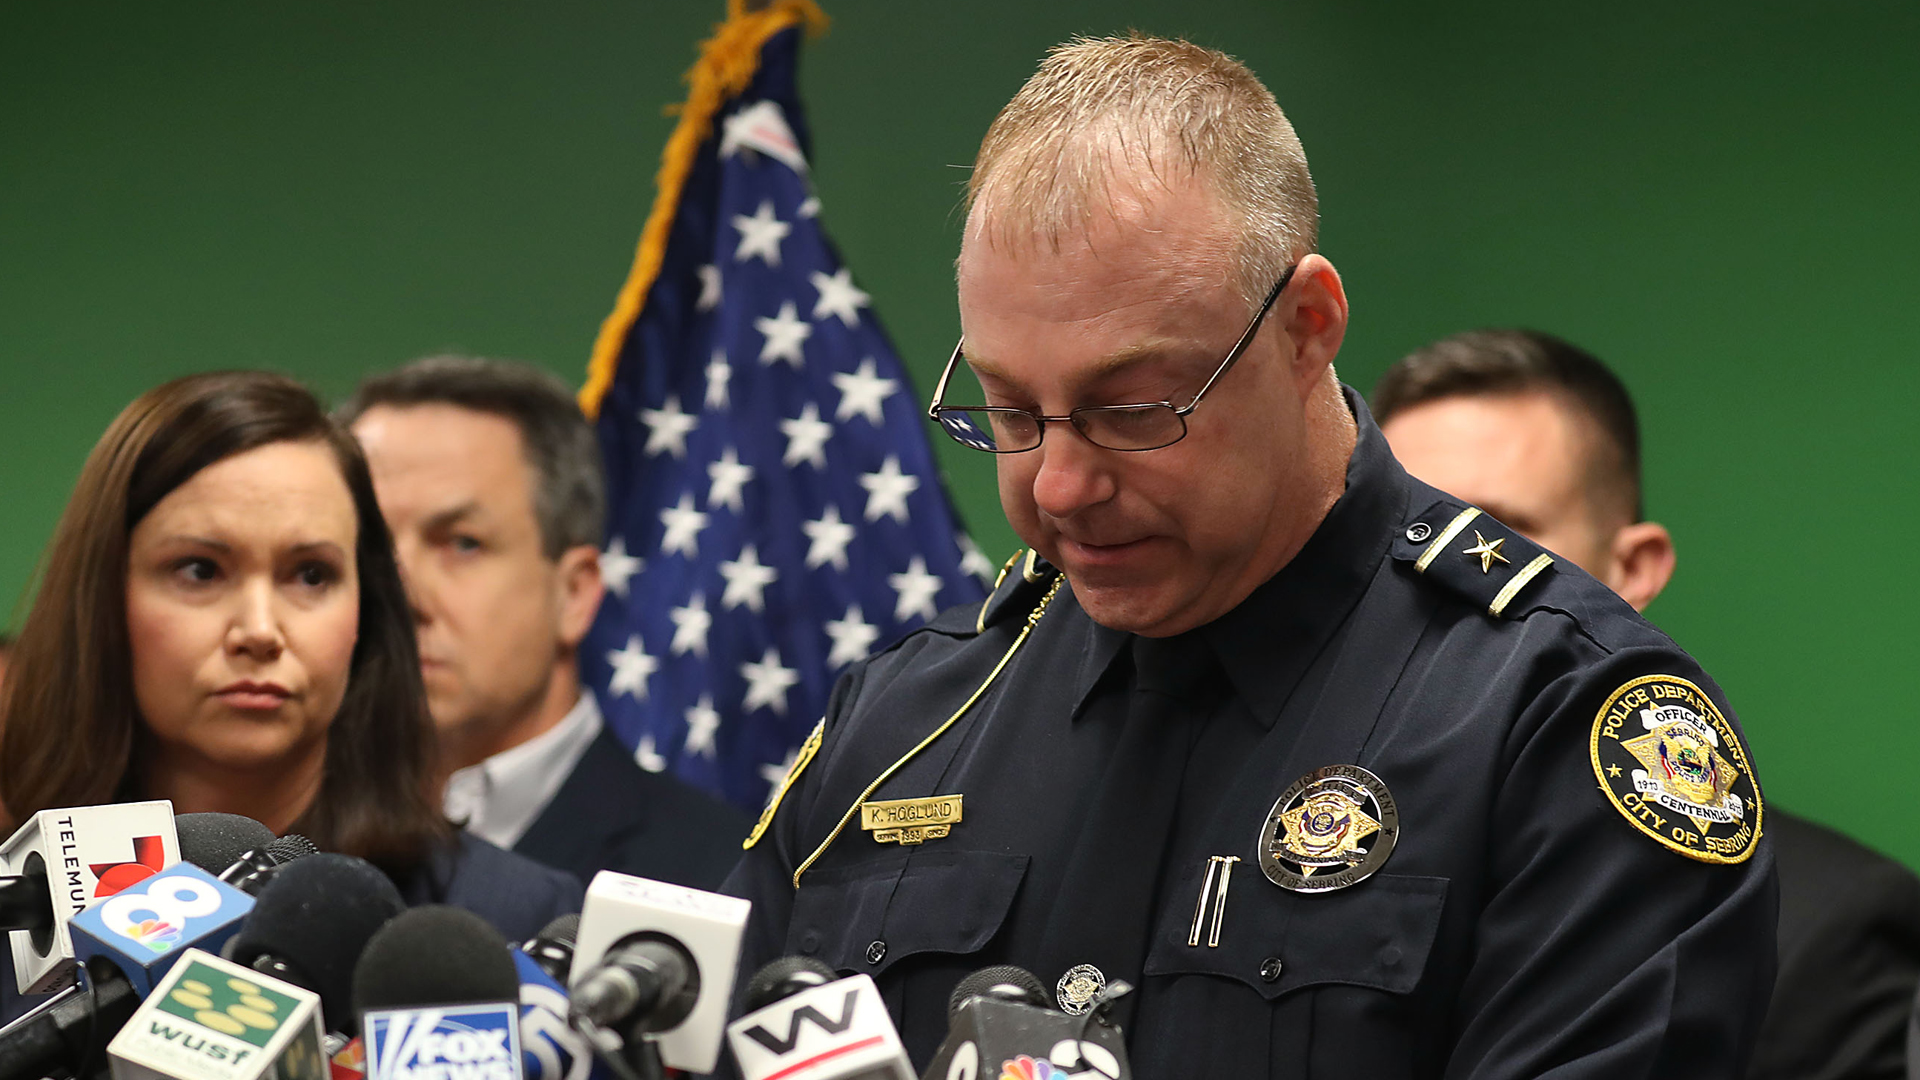 Karl Hoglund, chief of Sebring Police Department, speaks as Ashley Moody, Florida's Attorney General, listens during a press conference about the shooting at a SunTrust Bank branch on Jan. 24, 2019, in Sebring, Fla. (Credit: Joe Raedle/Getty Images)